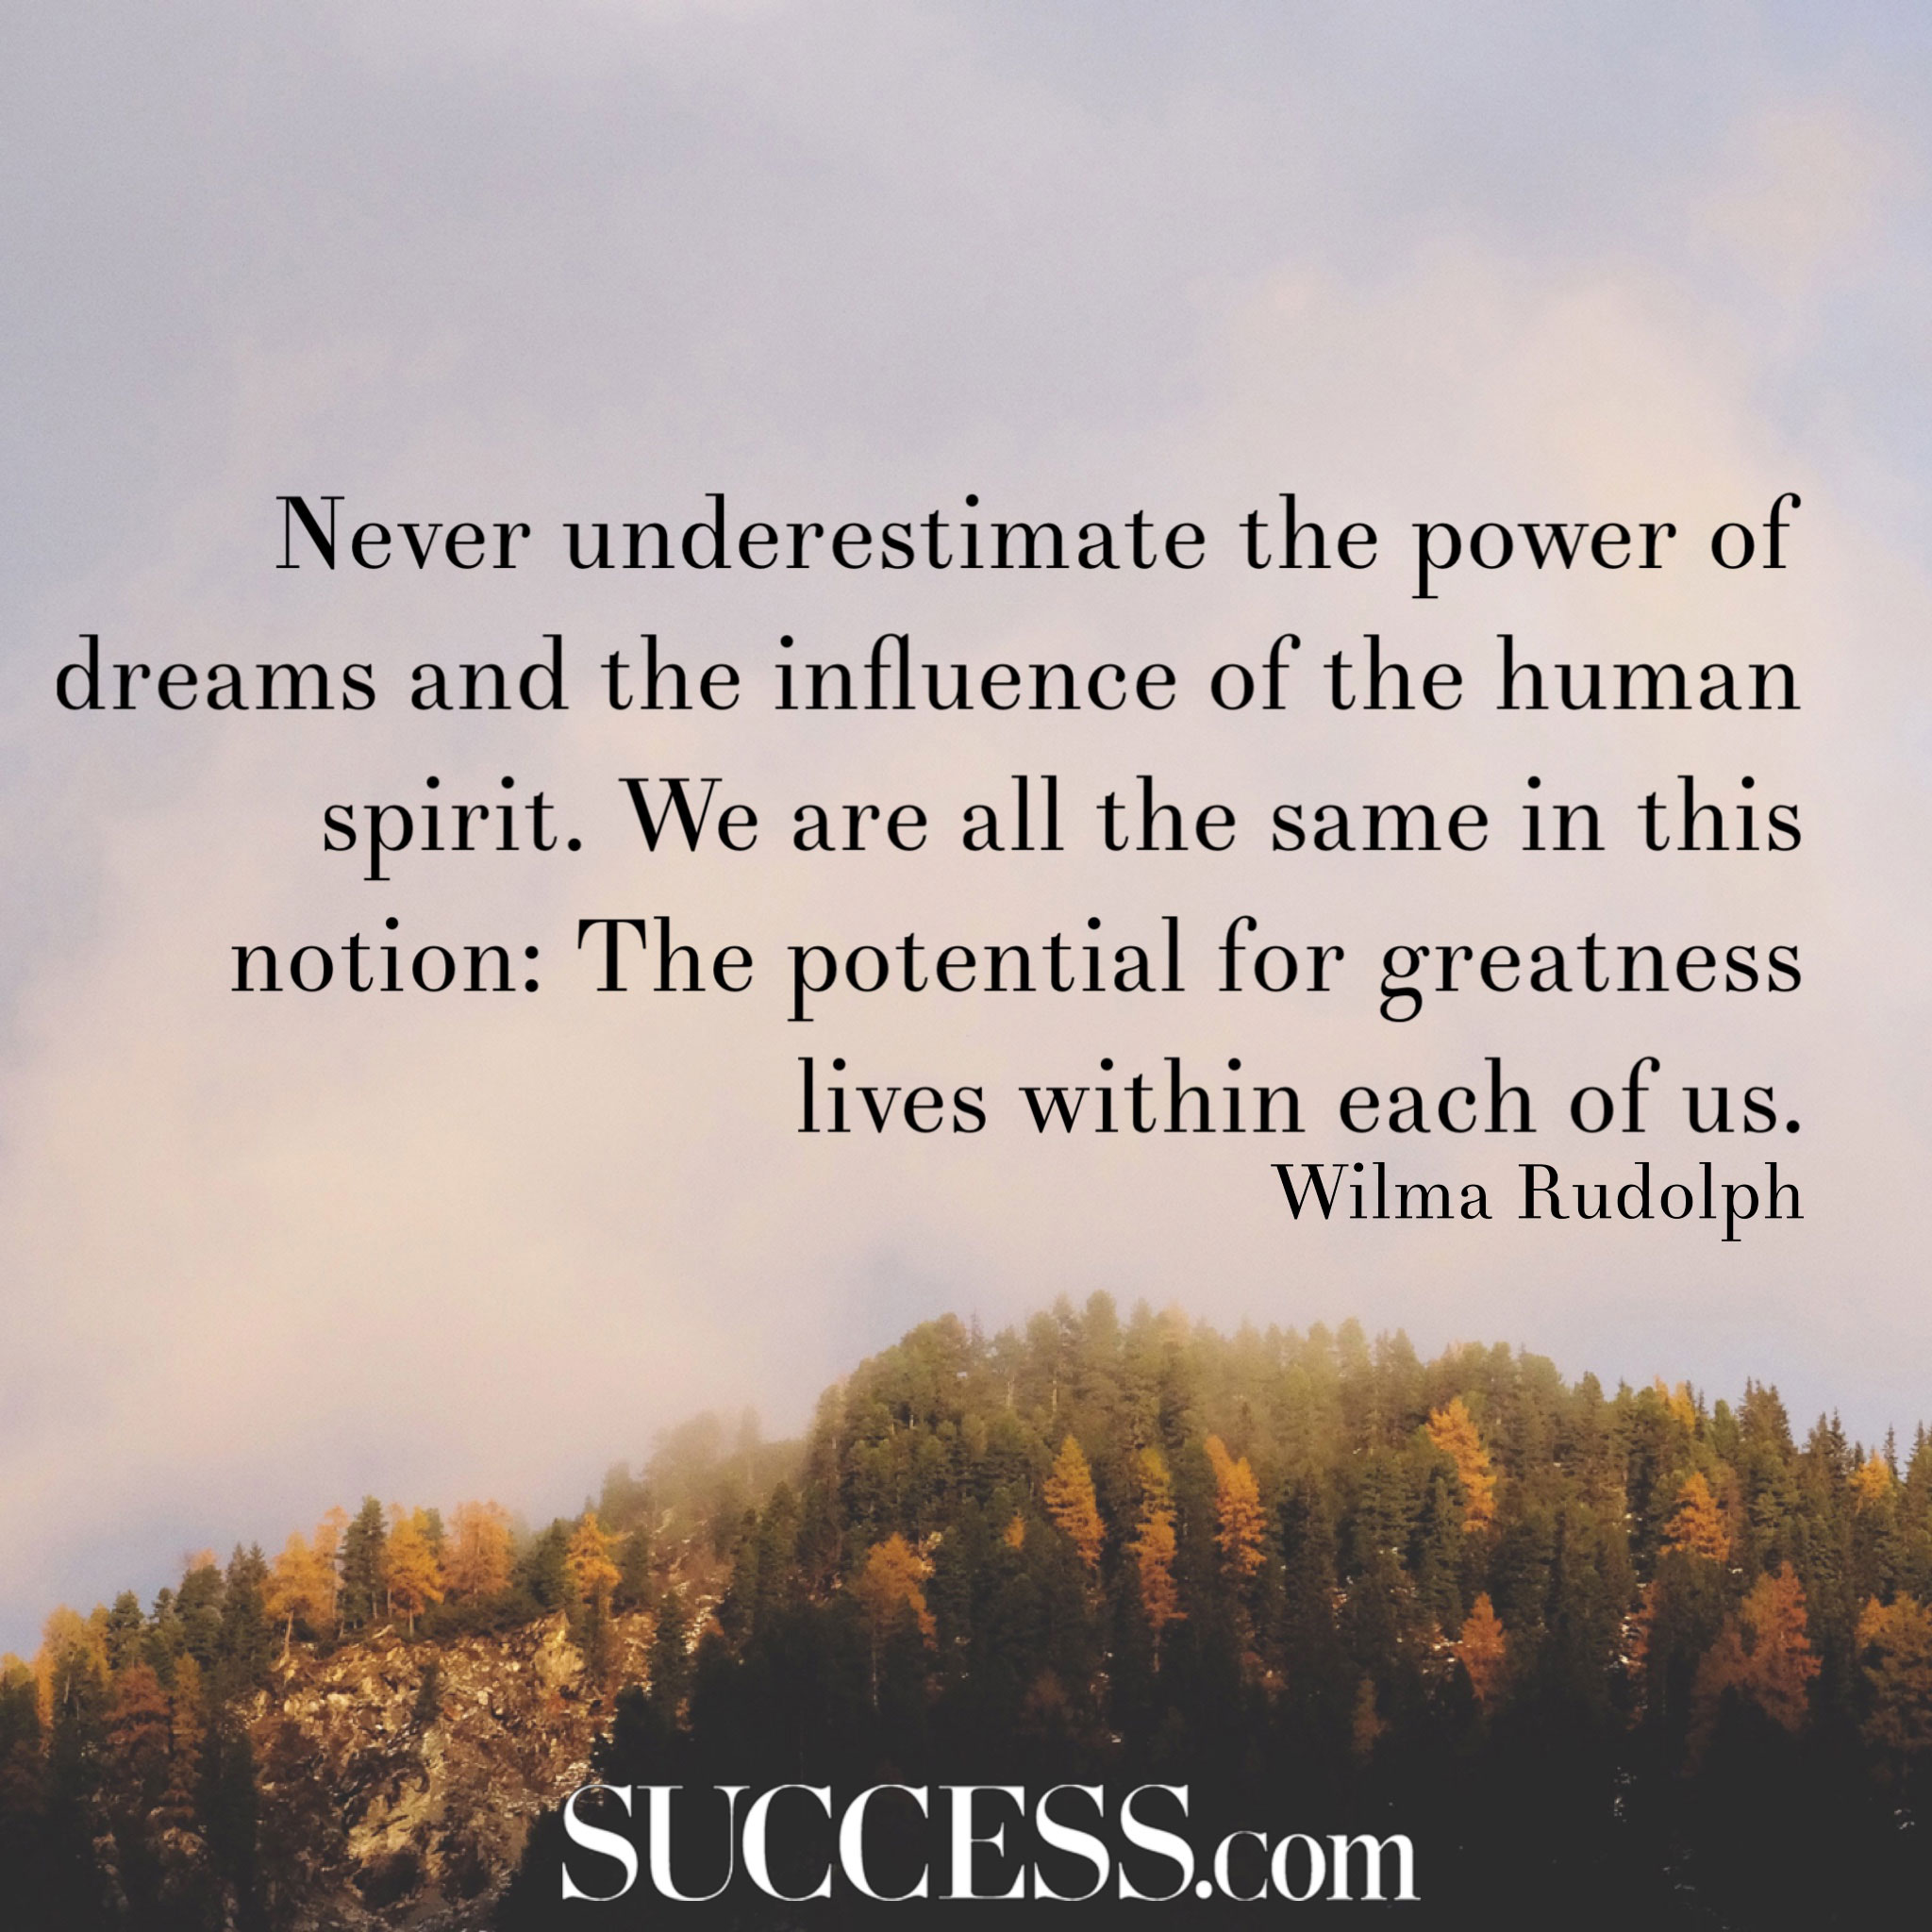 19 Powerful Quotes to Inspire Greatness | SUCCESS